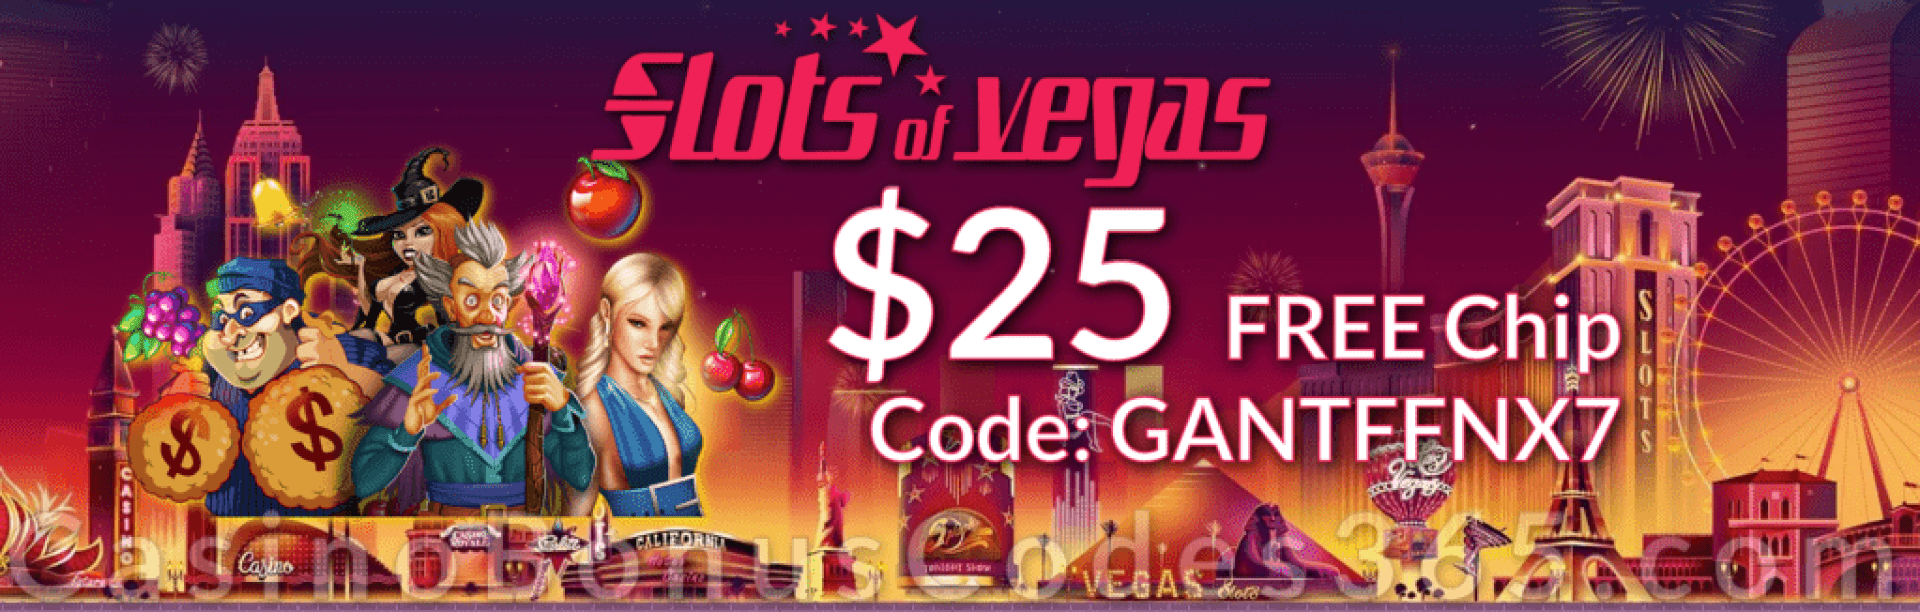 Casino Bonus Codes 421127